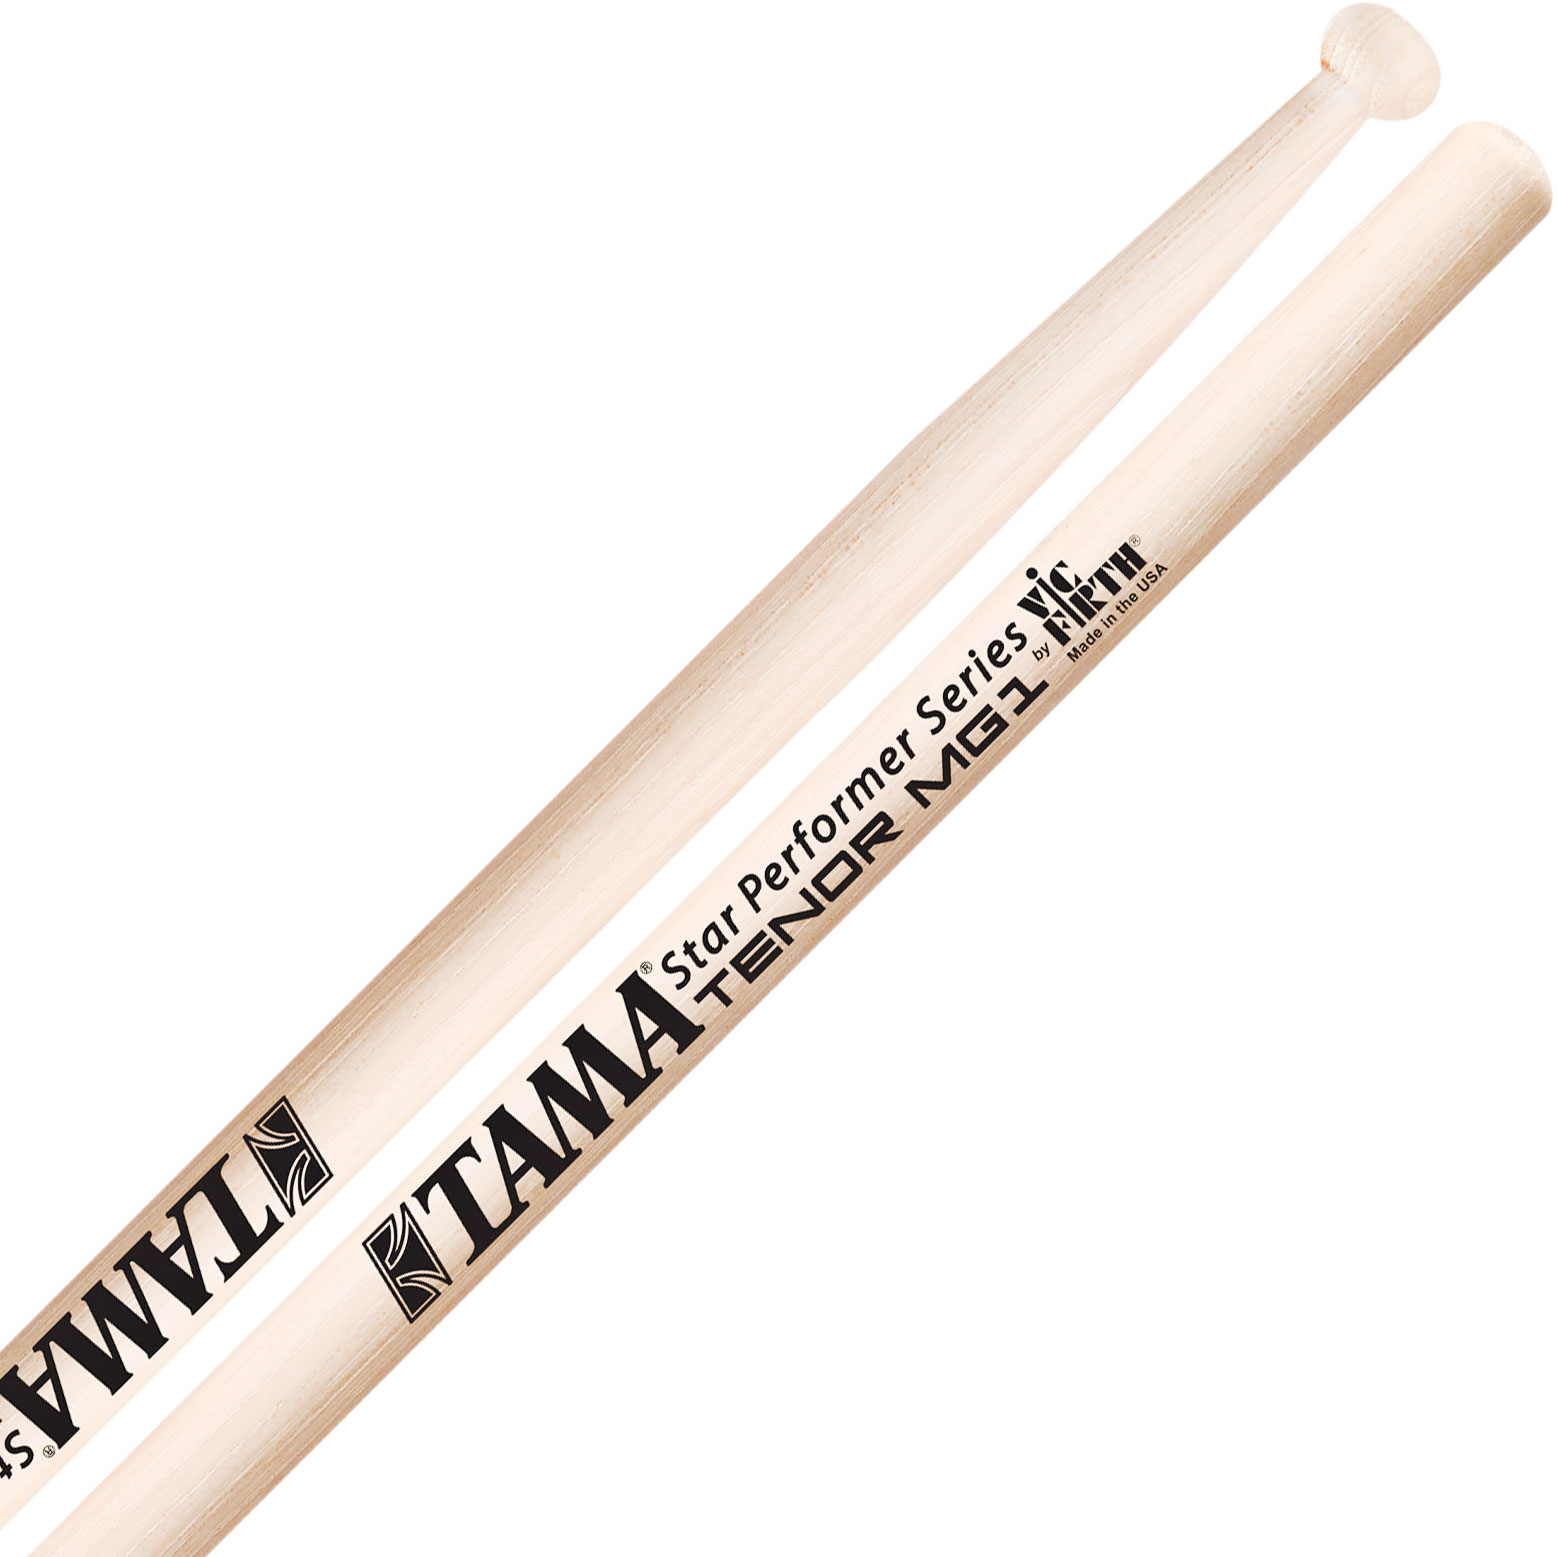 Tama MG1 Star Performer Marching Tenor Sticks